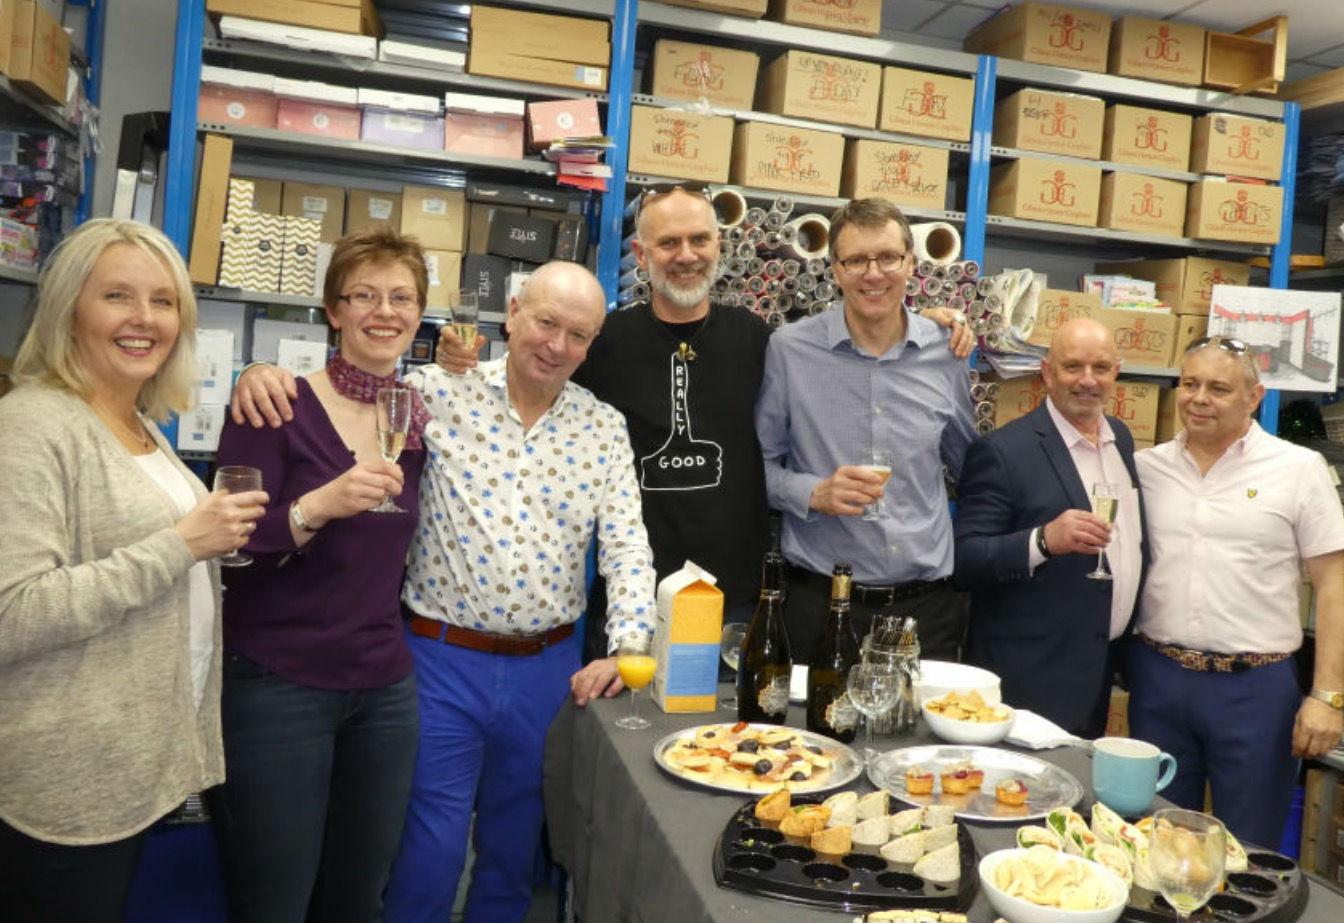 Above: David at the opening of House of Cards' revamped flagship store celebration with retailer owners Miles Robinson (far right) and Nigel Williamson (third right) and Derek Hanley, Warren Lomax, Lisa Shoesmith and Julie Brightly.